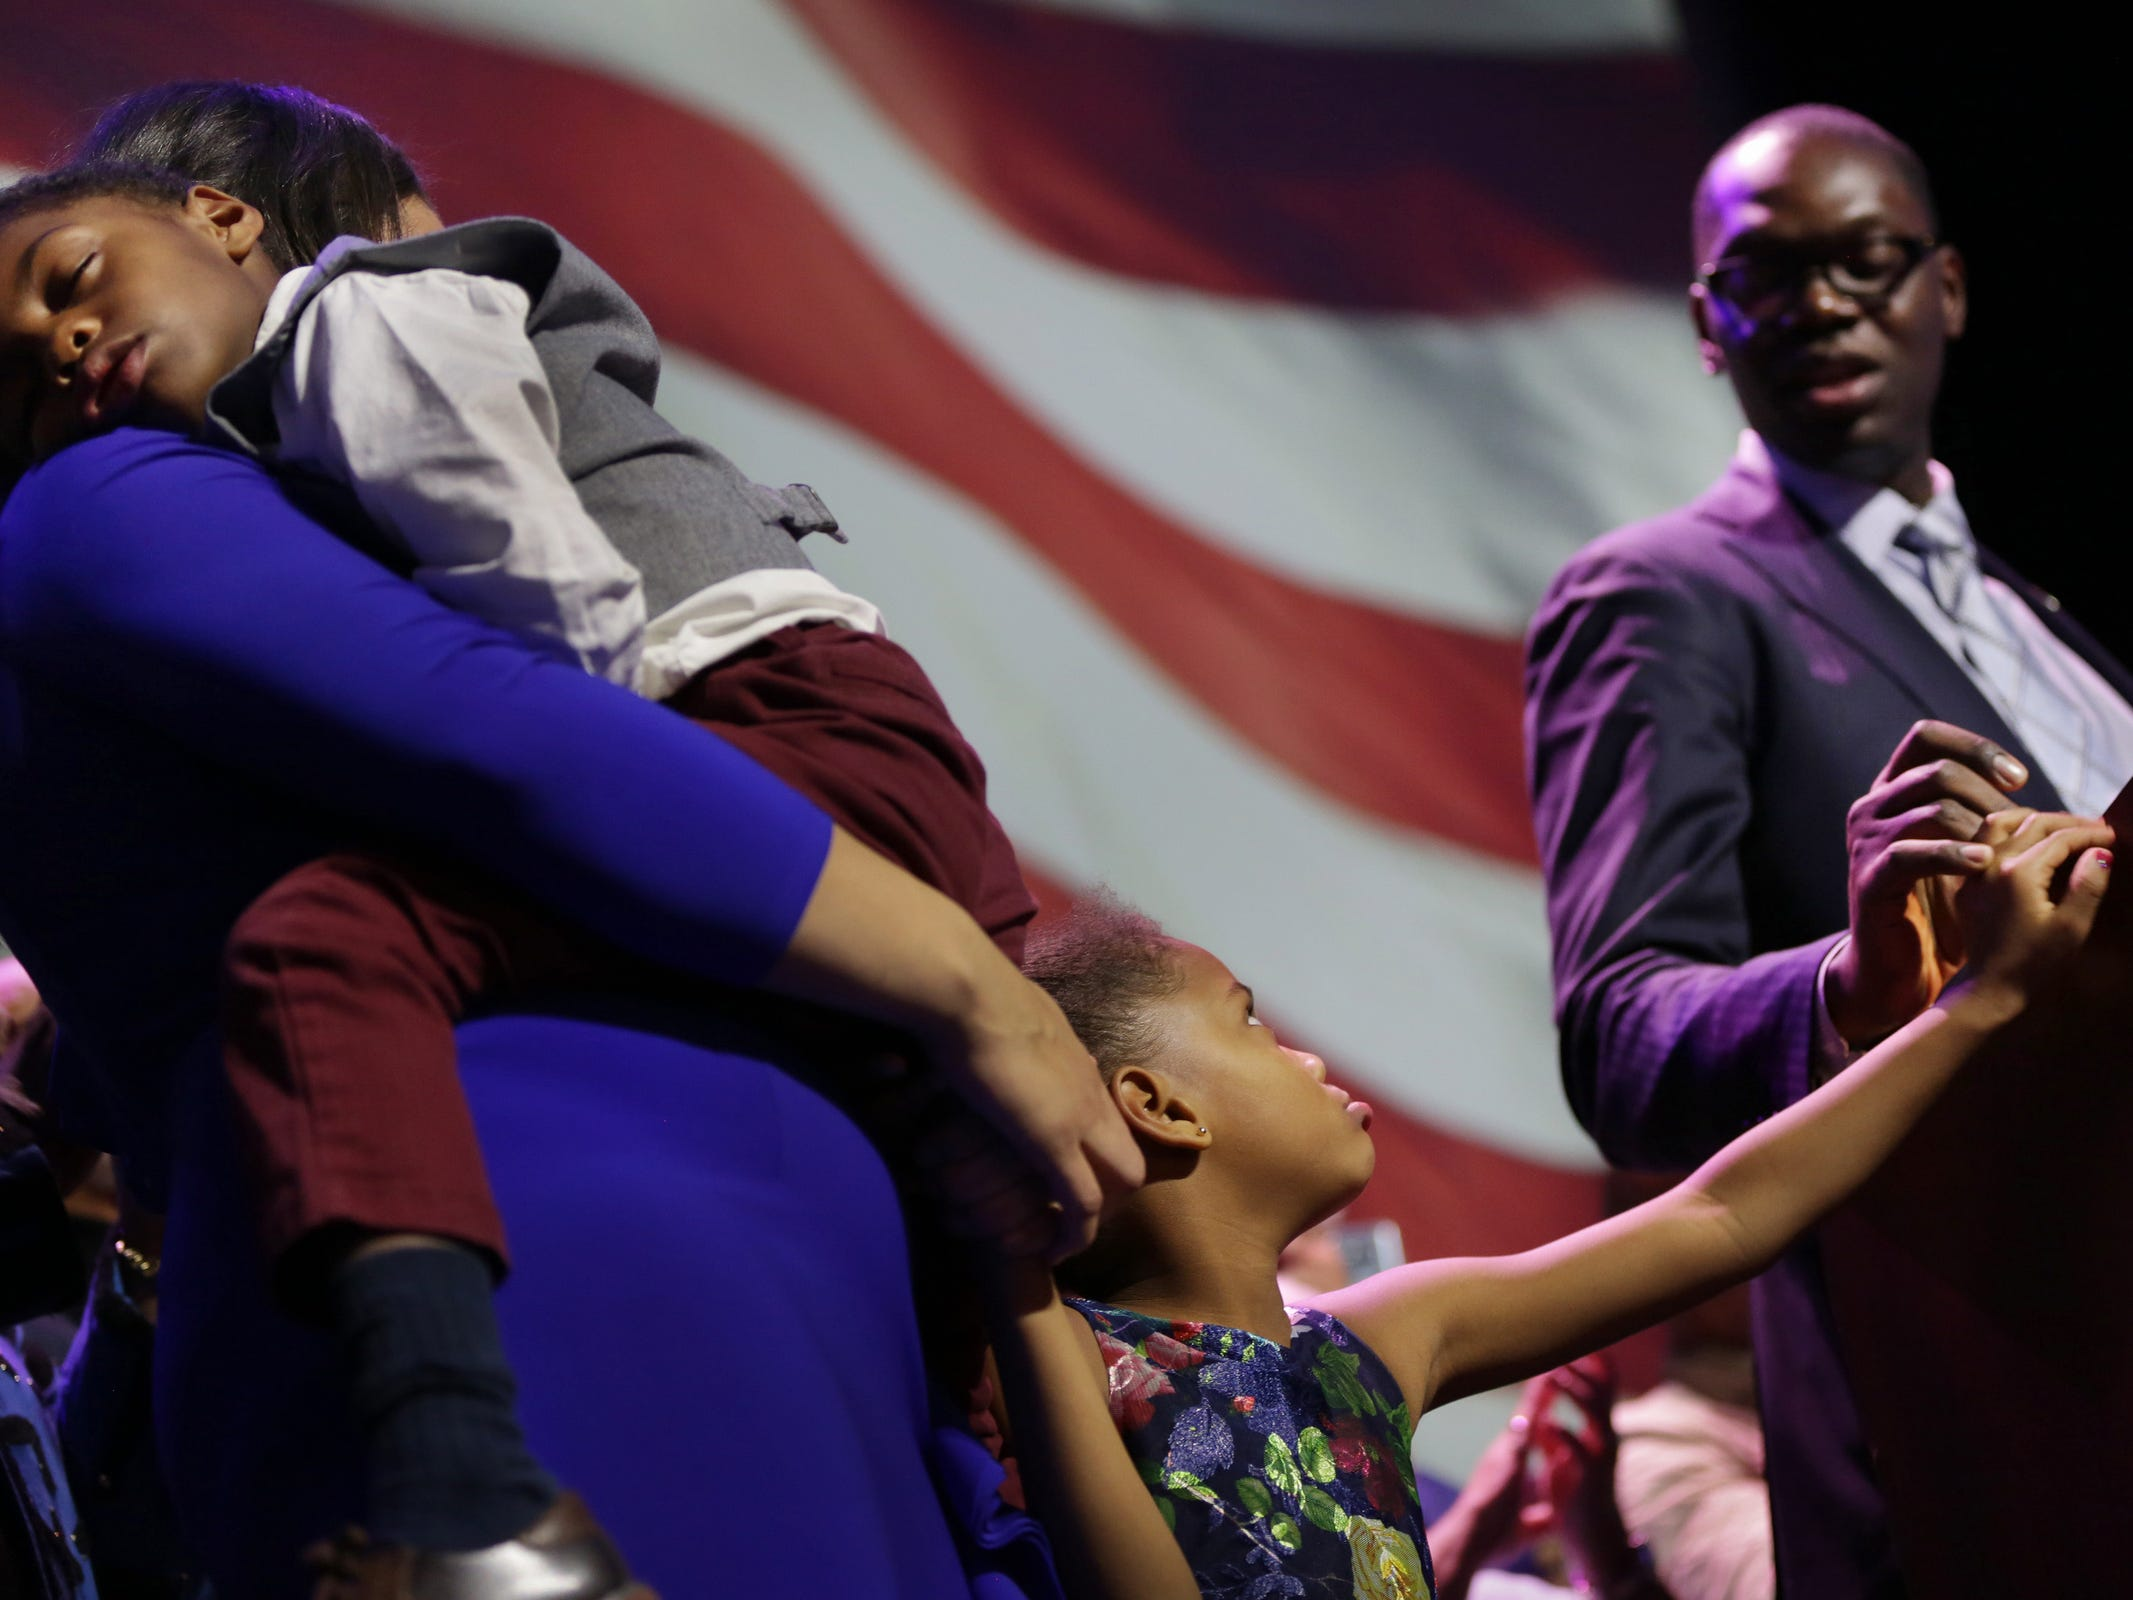 Garlin Gilchrist exchanges a look with his daughter as he speaks to the crowd celebrating his victory as Lieutenant governor with Gretchen Whitmer as governor during a celebration at MotorCity Casino's Sound Board in Detroit on Tuesday, Nov. 6, 2018.